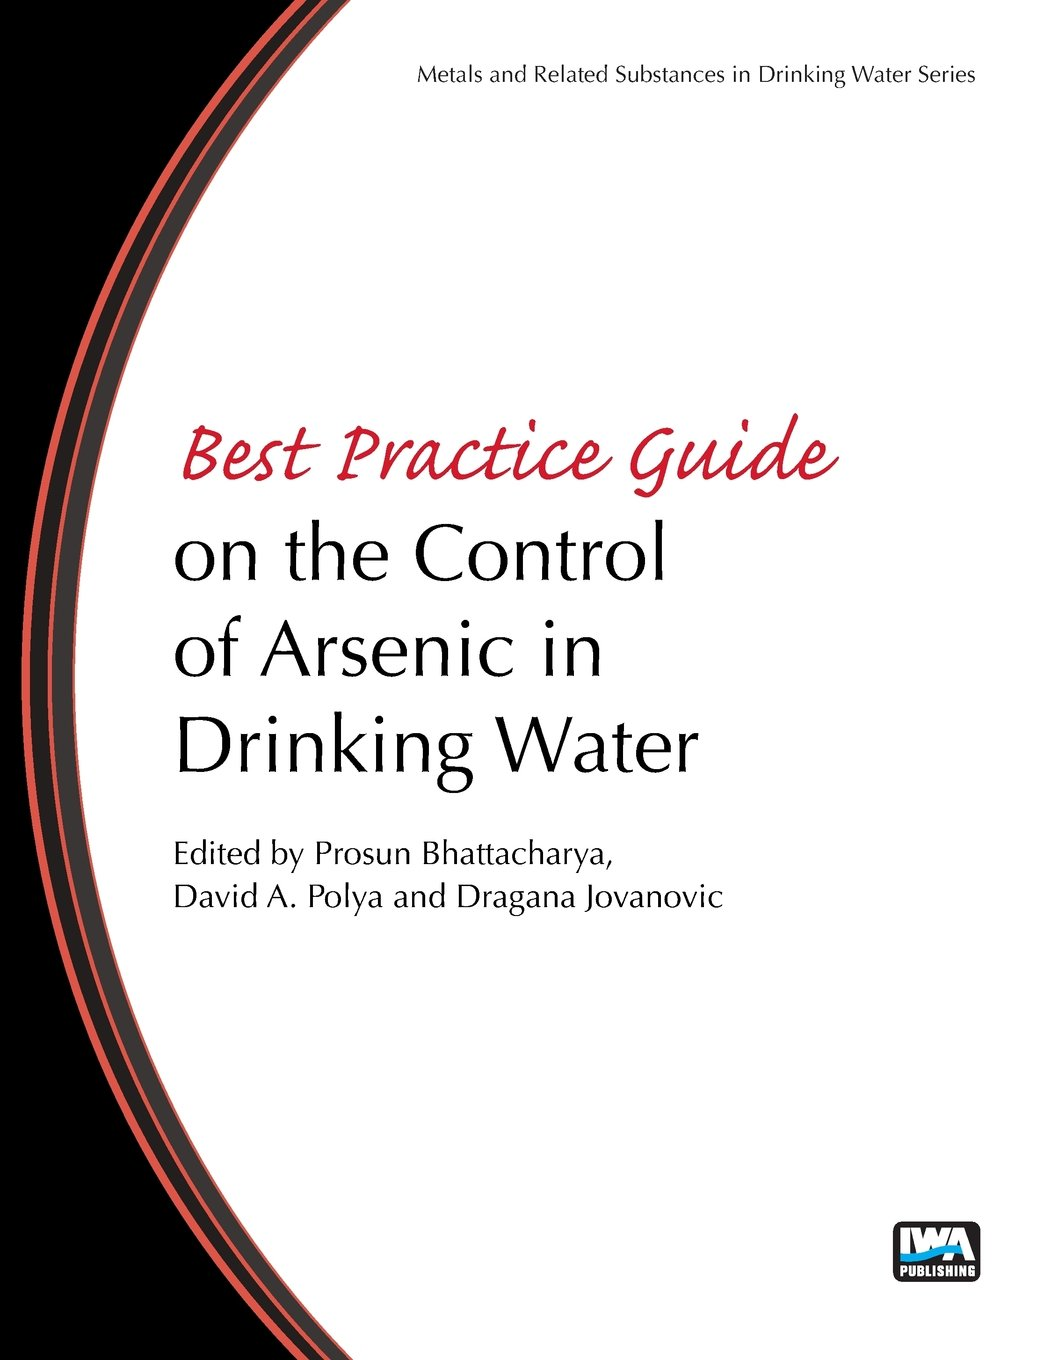 Best Practice Guide on the Control of Arsenic in Drinking Water (Metals and Related Substances in Drinking Water)